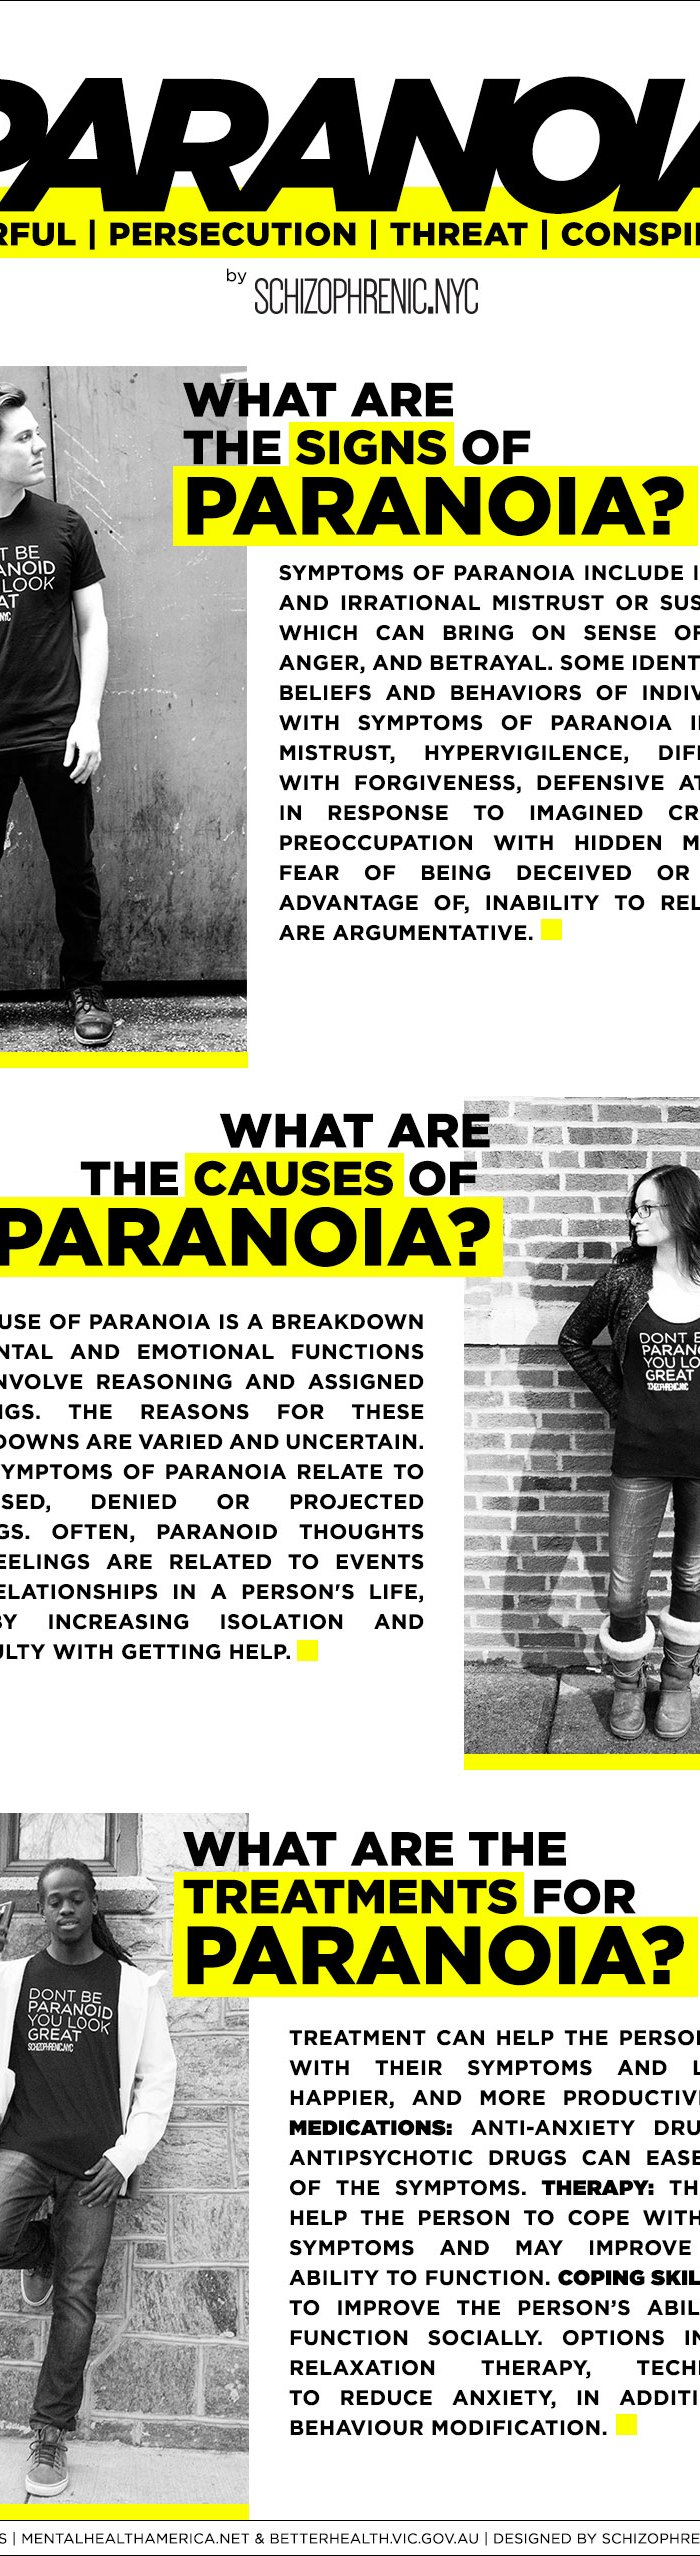 Paranoia Infographic by Schizophrenic.NYC 2